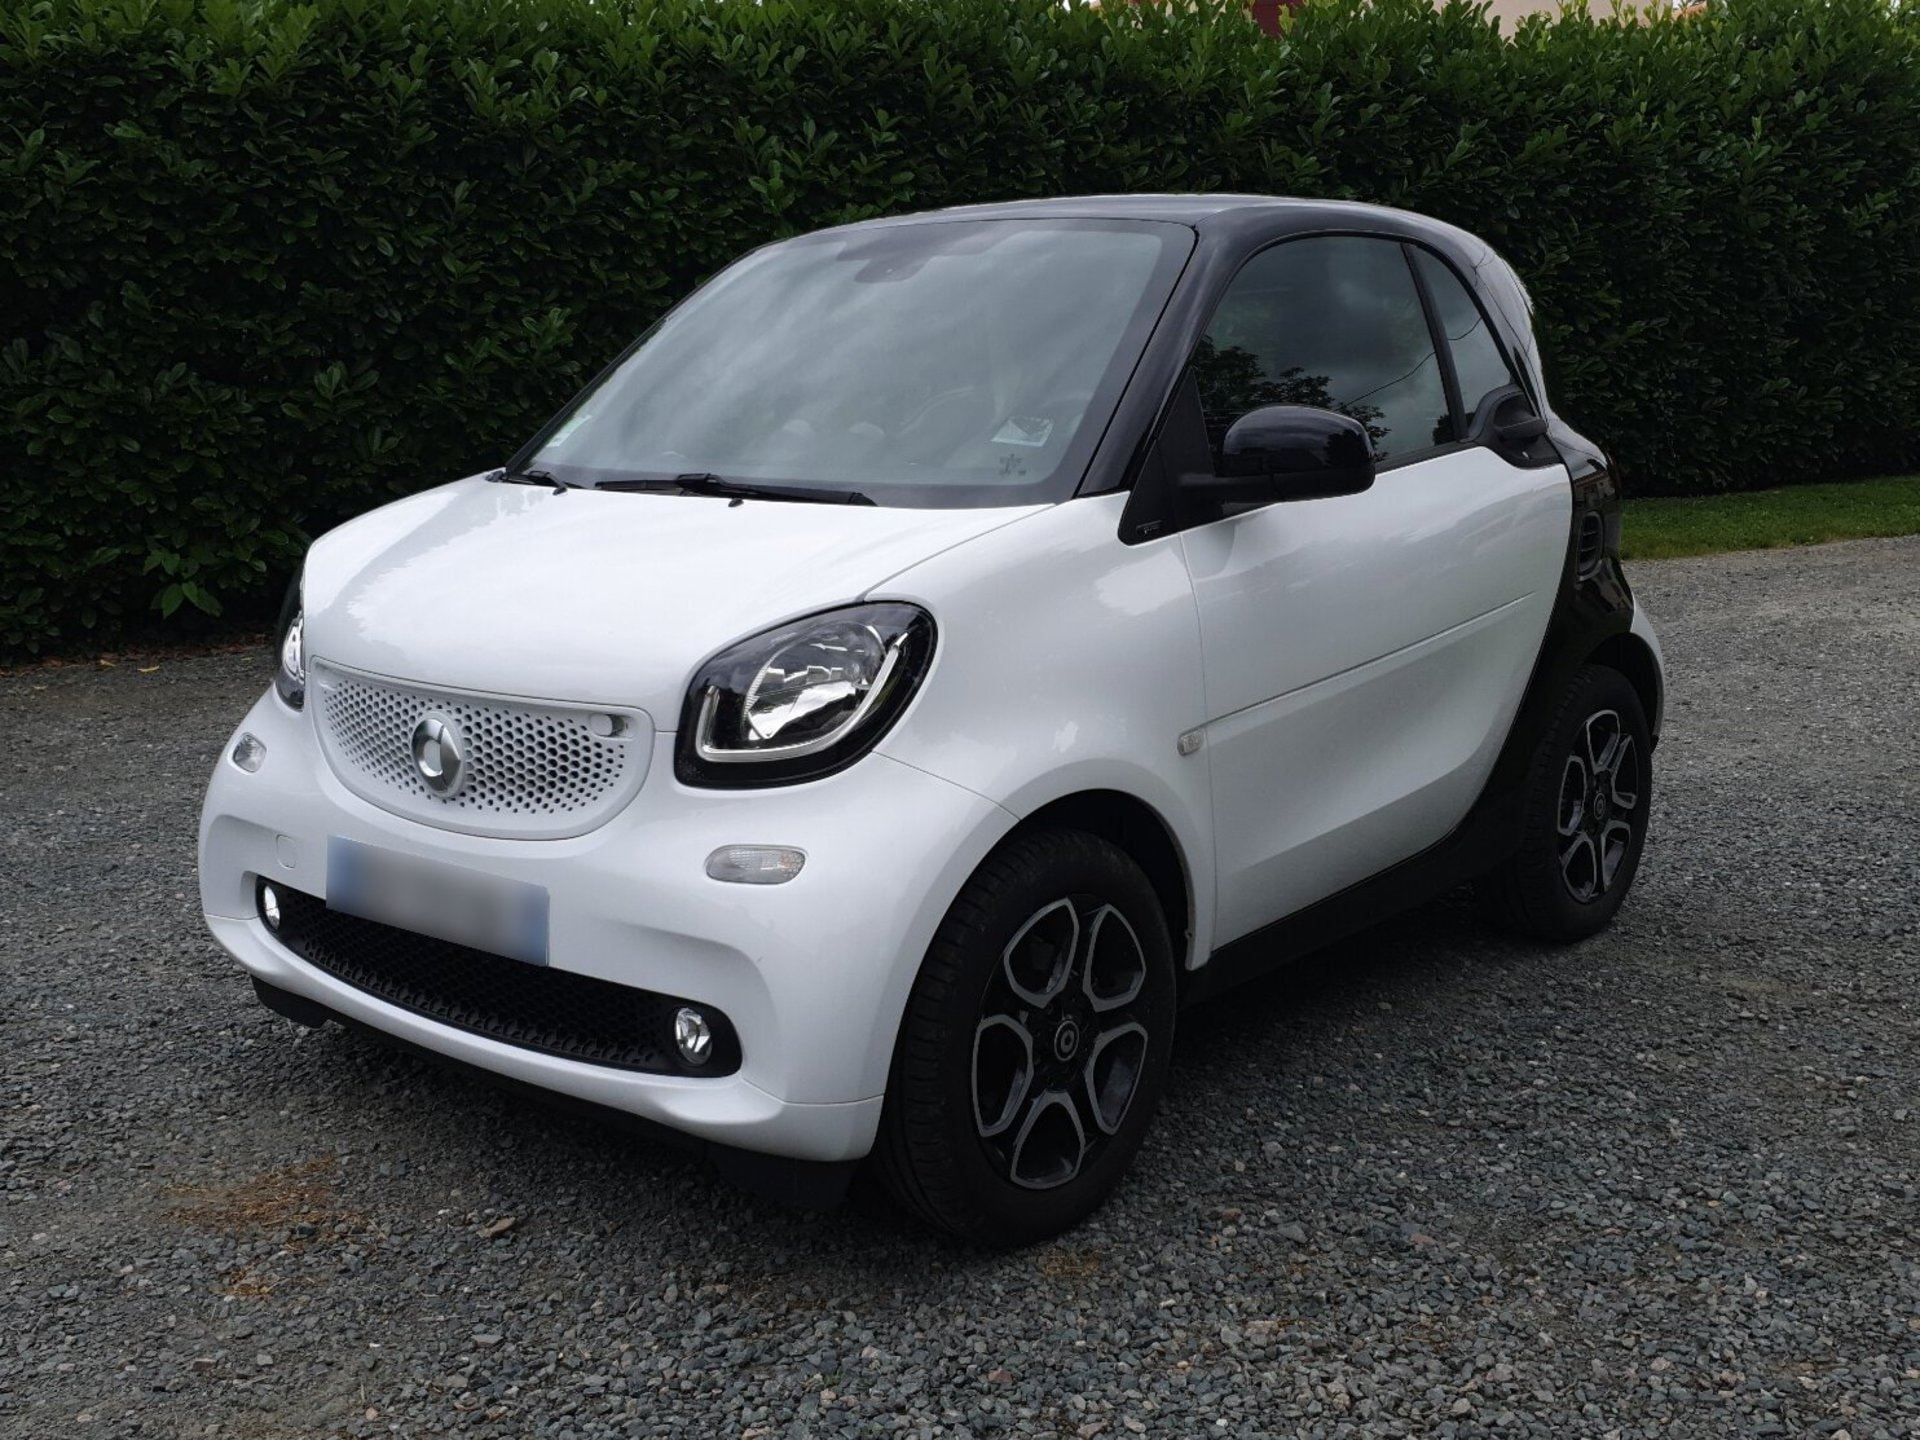 SMART FORTWO 0.9 T 90 SOLIDGREY TWINAMIC BVA - Carventura